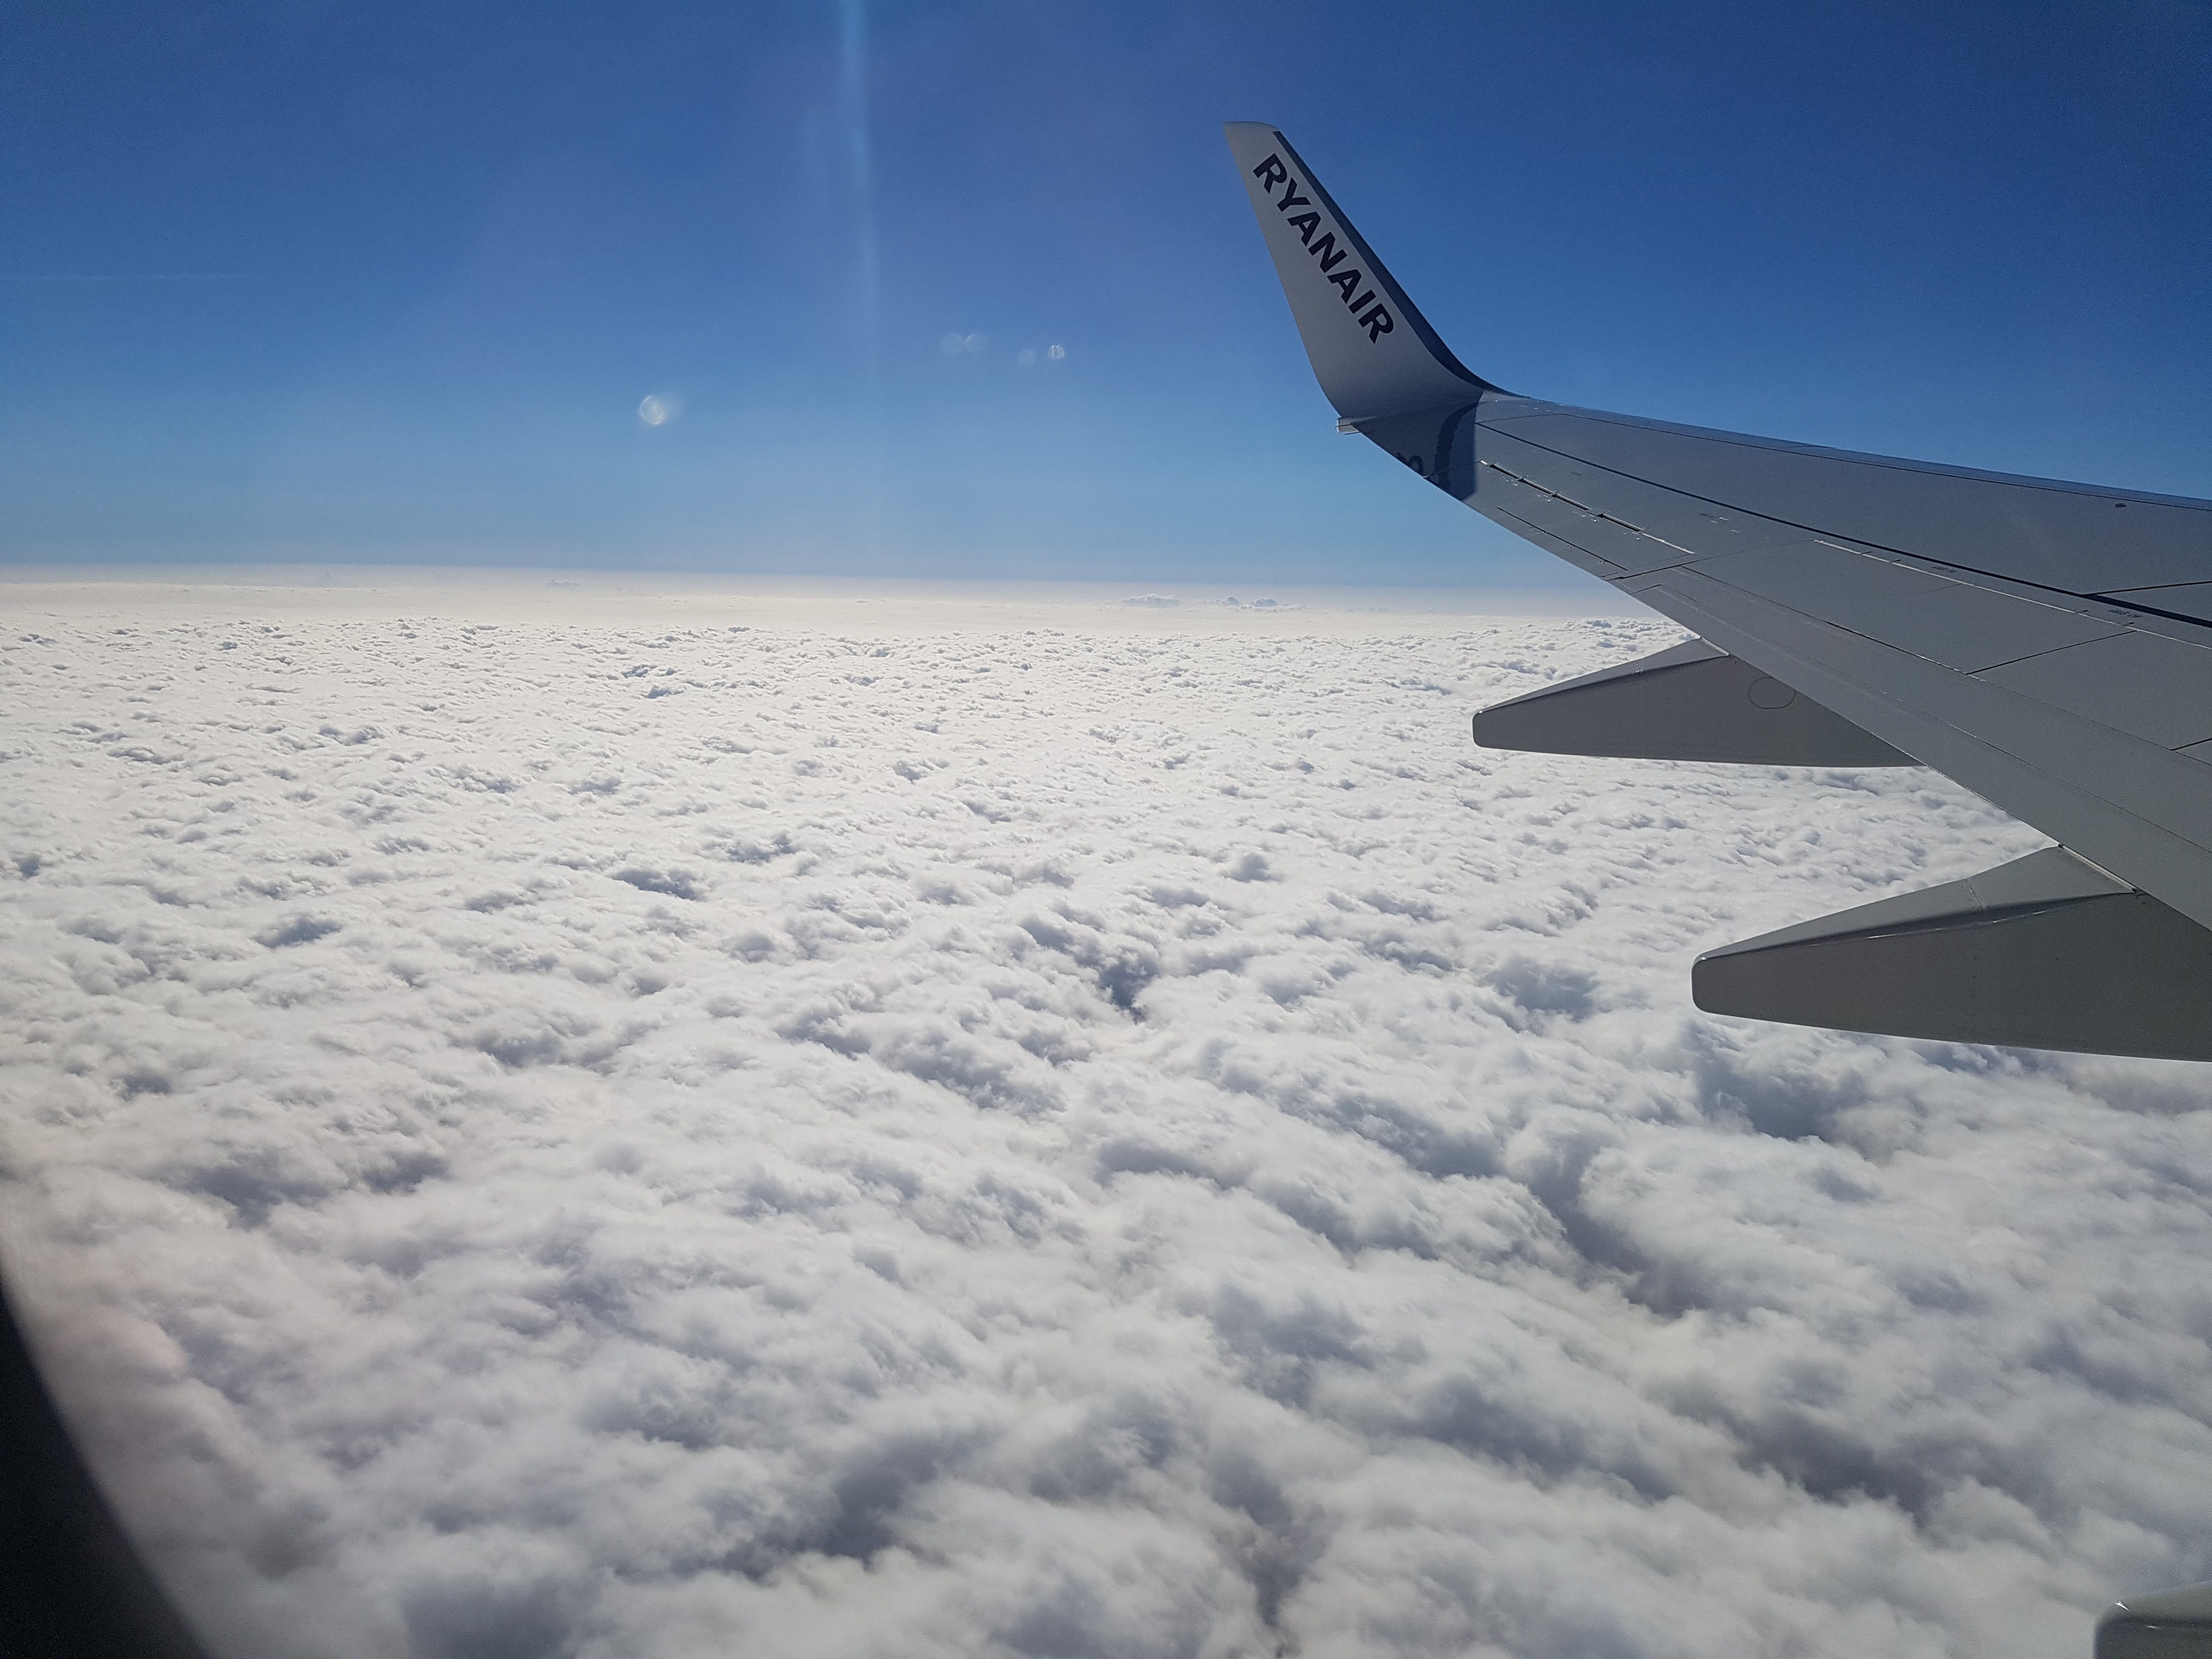 Free stock photo of above the clouds flying high